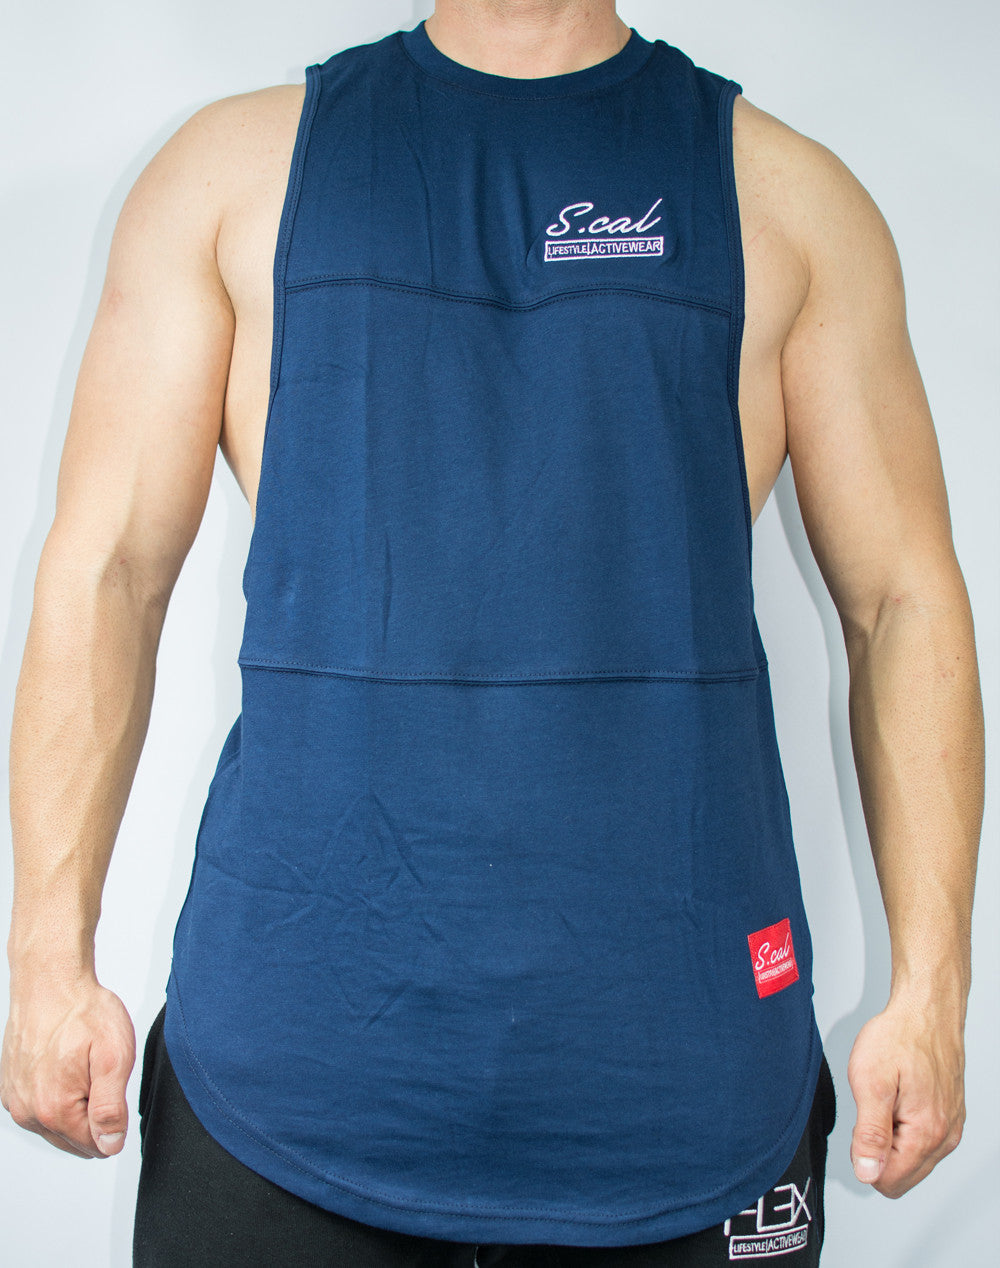 Scal Deluxe Cutoff Tee - Navy - Scal Clothing - 1